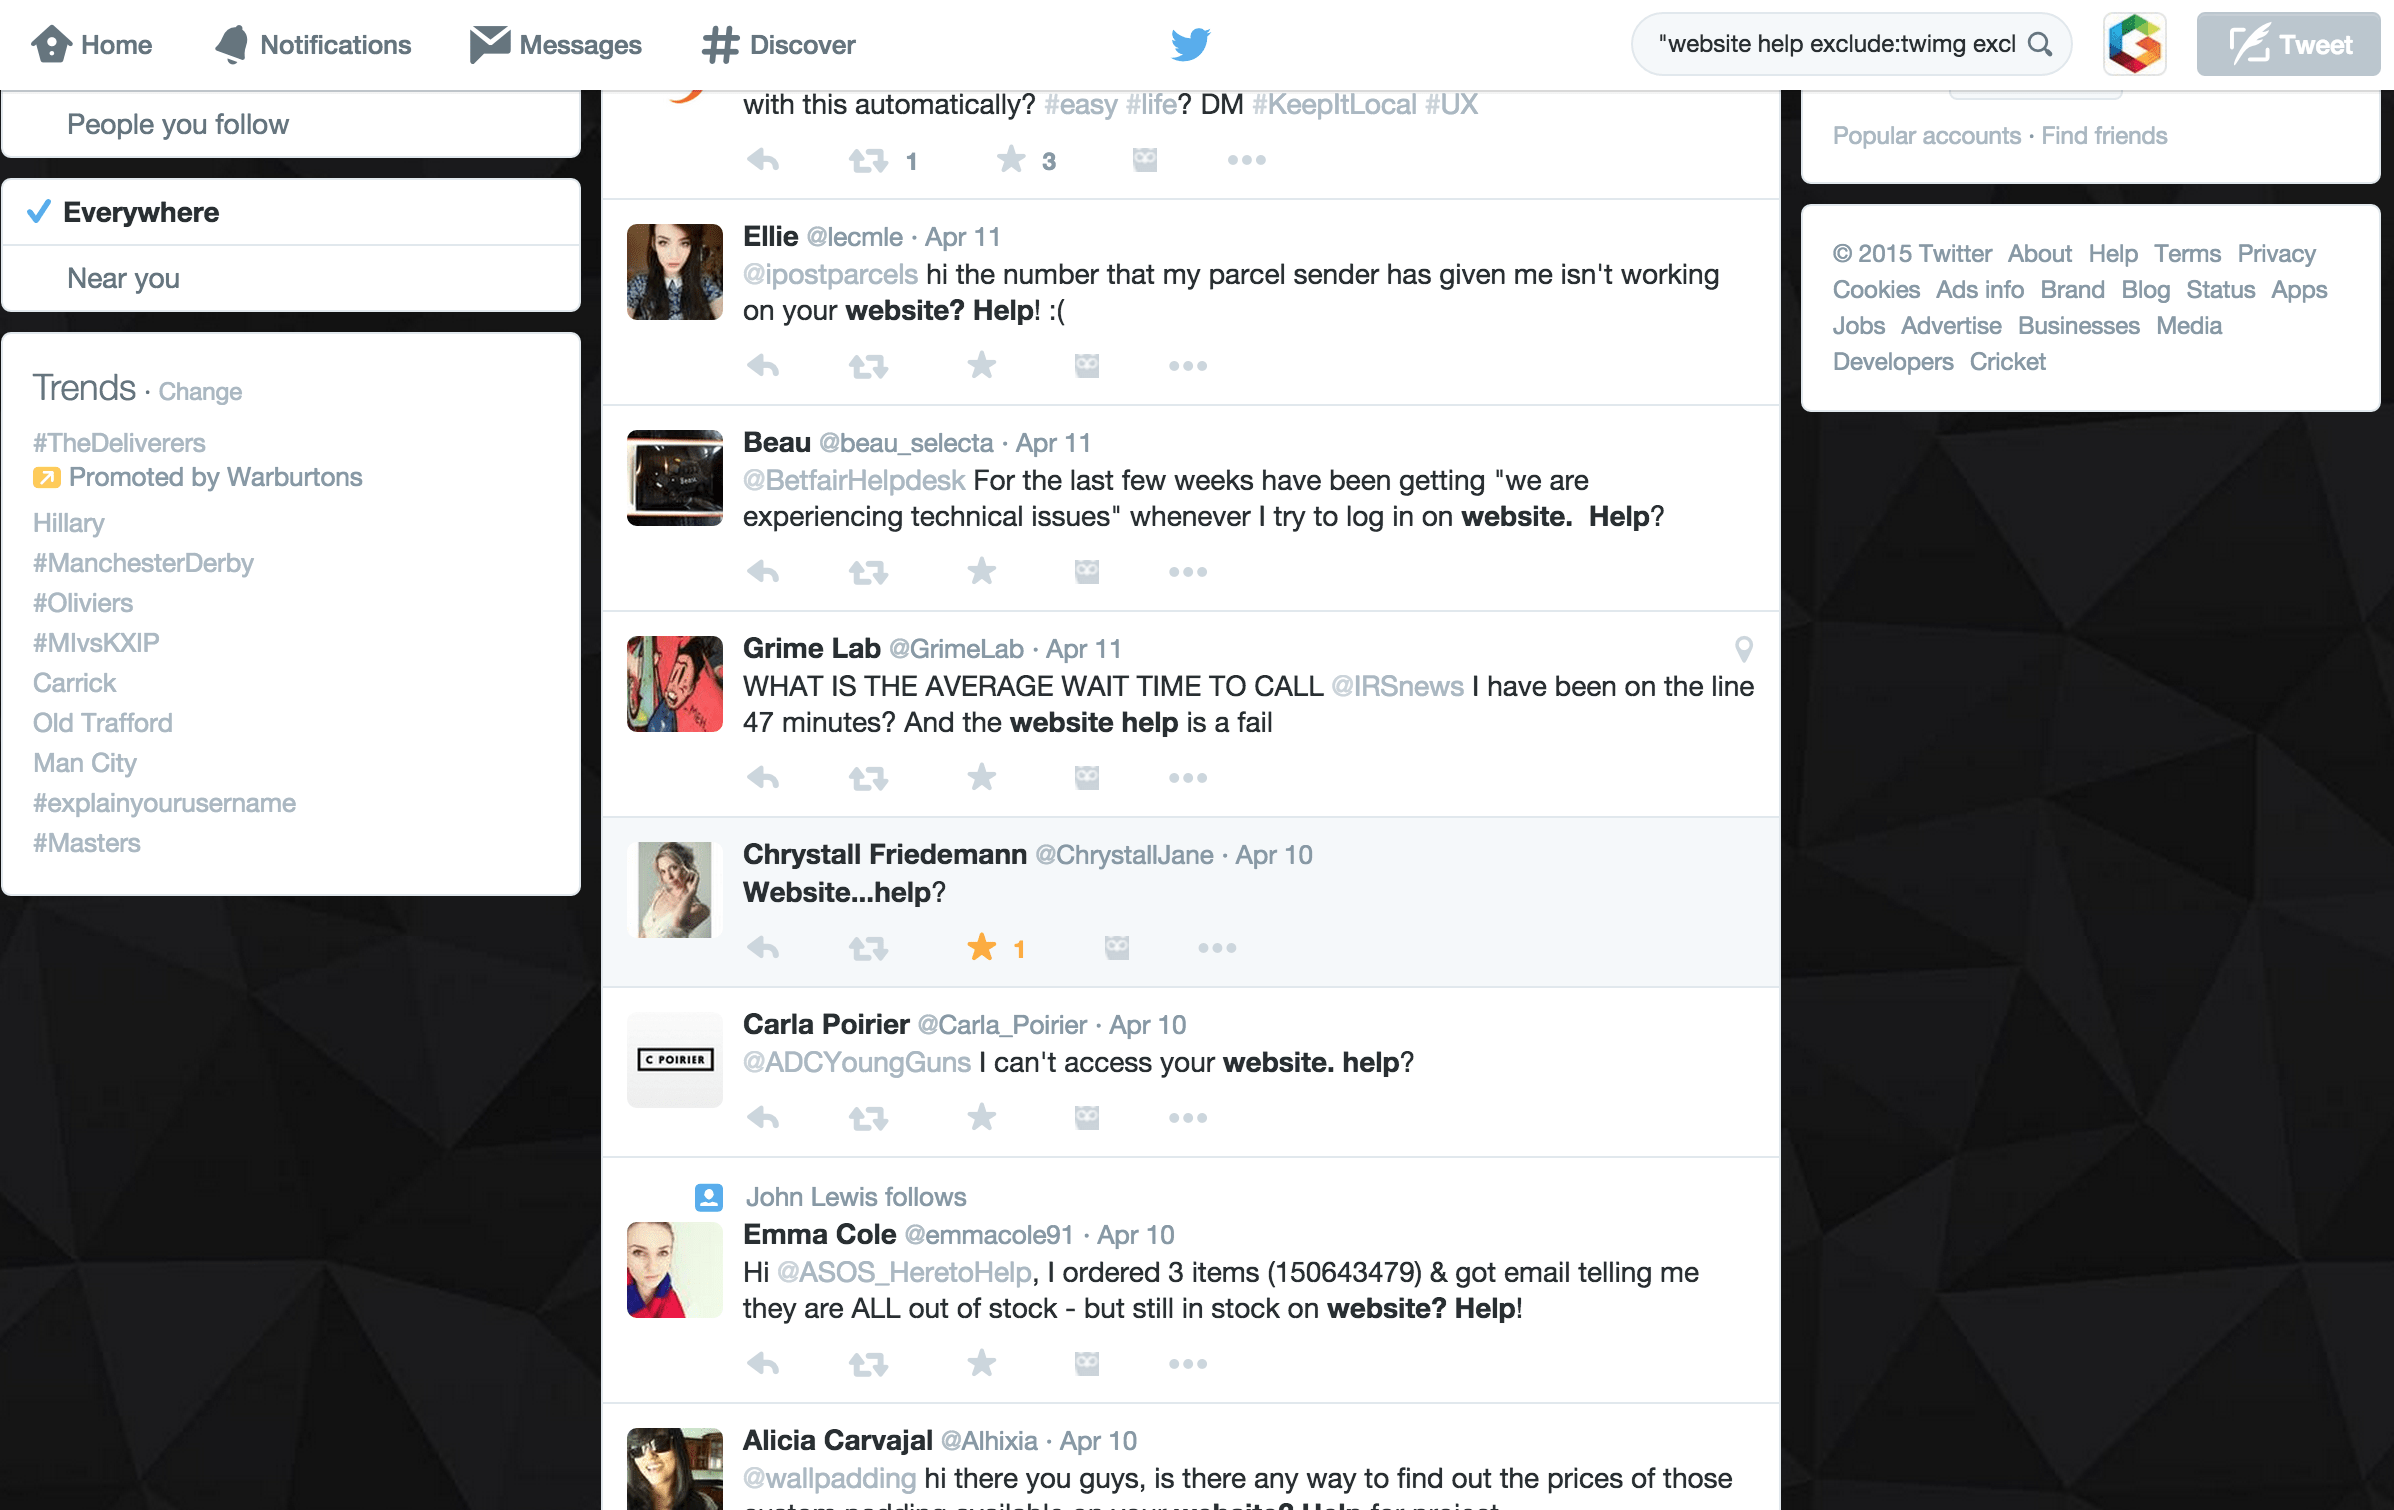 Twitter Feed Refined Results